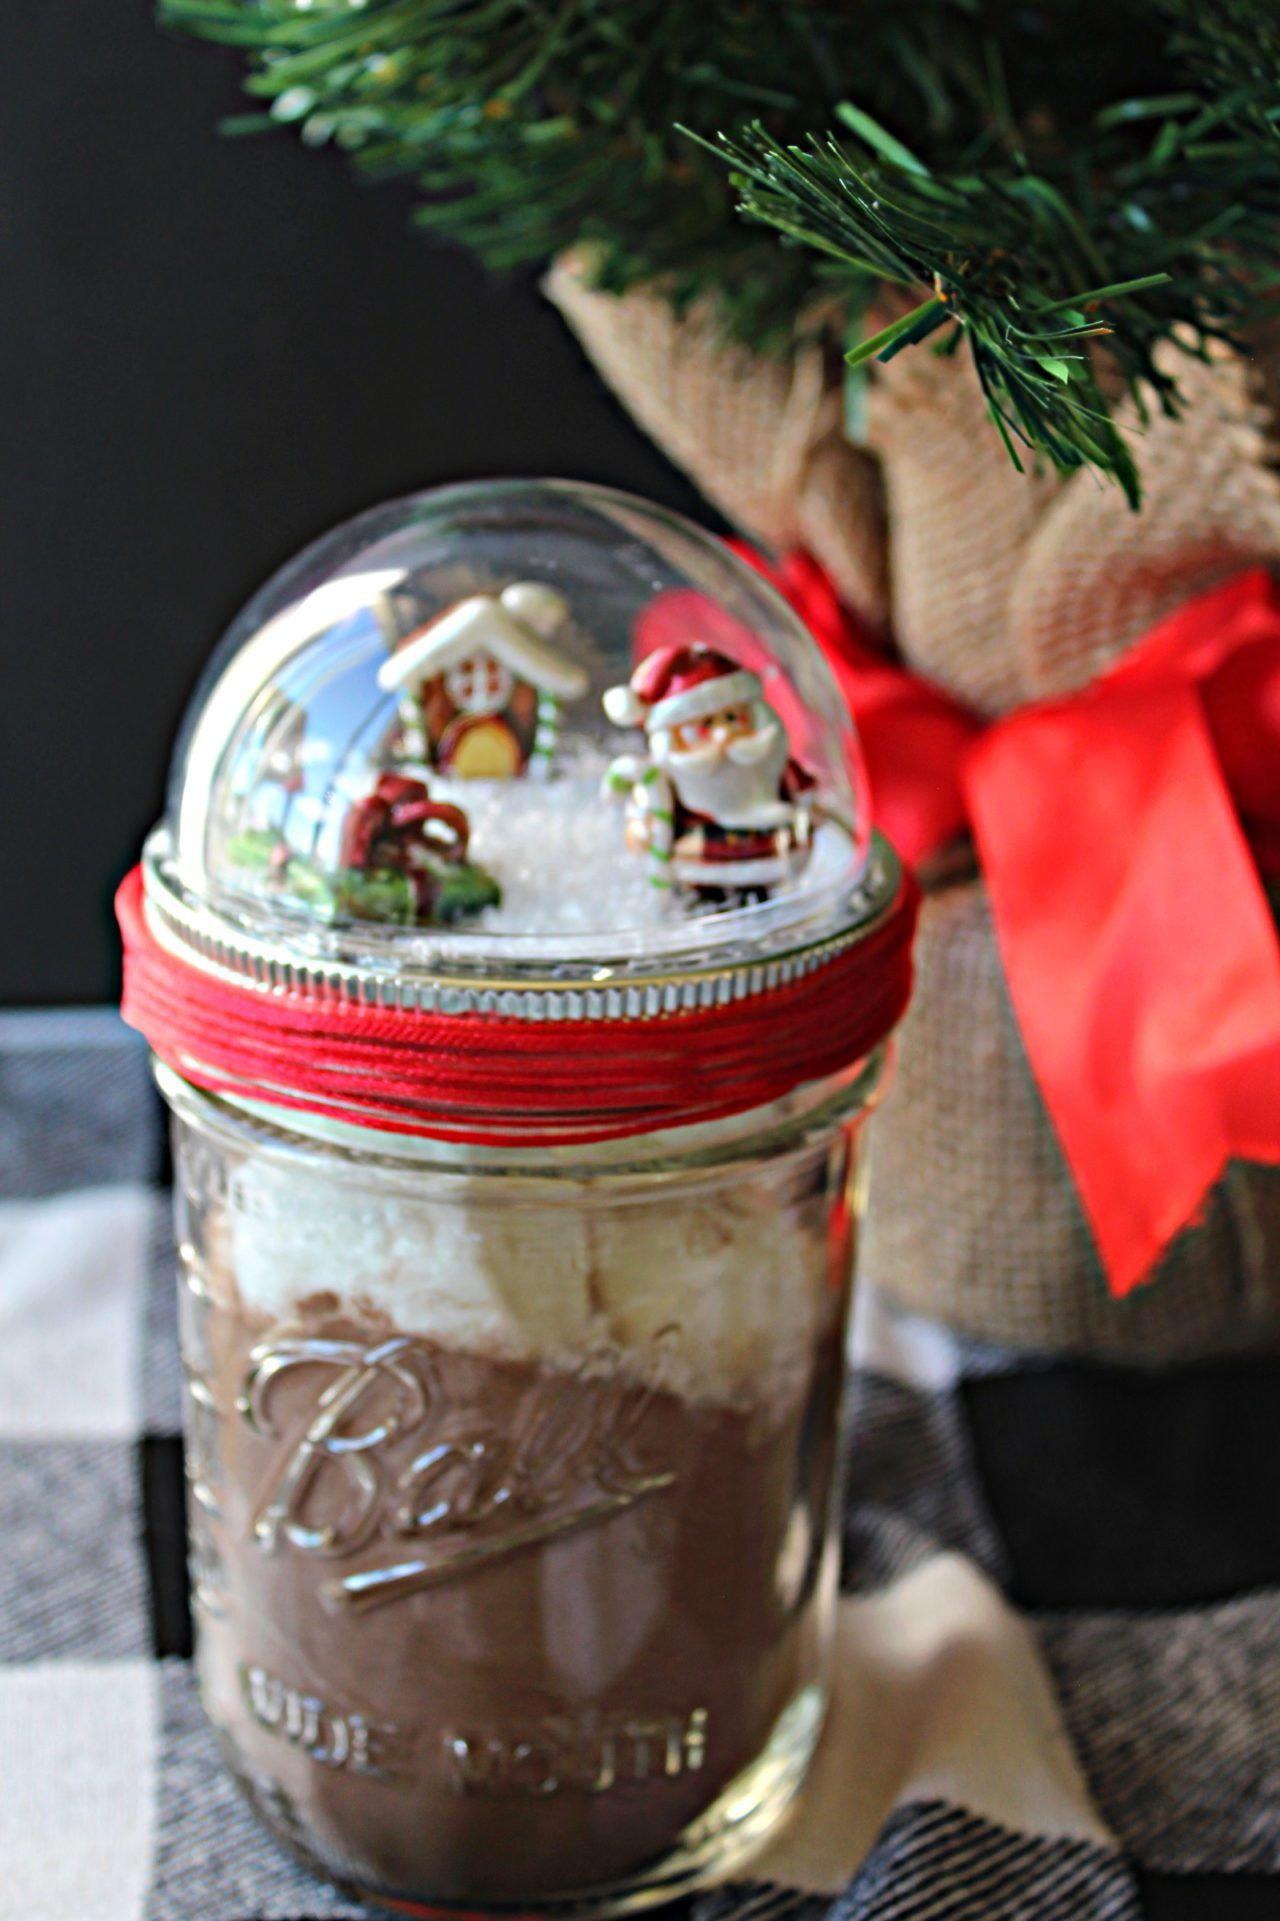 Fun Gift Idea How To Make Your Own Snow Globe Mason Jars Snow Globe Mason Jar Snow Globes Mason Jars